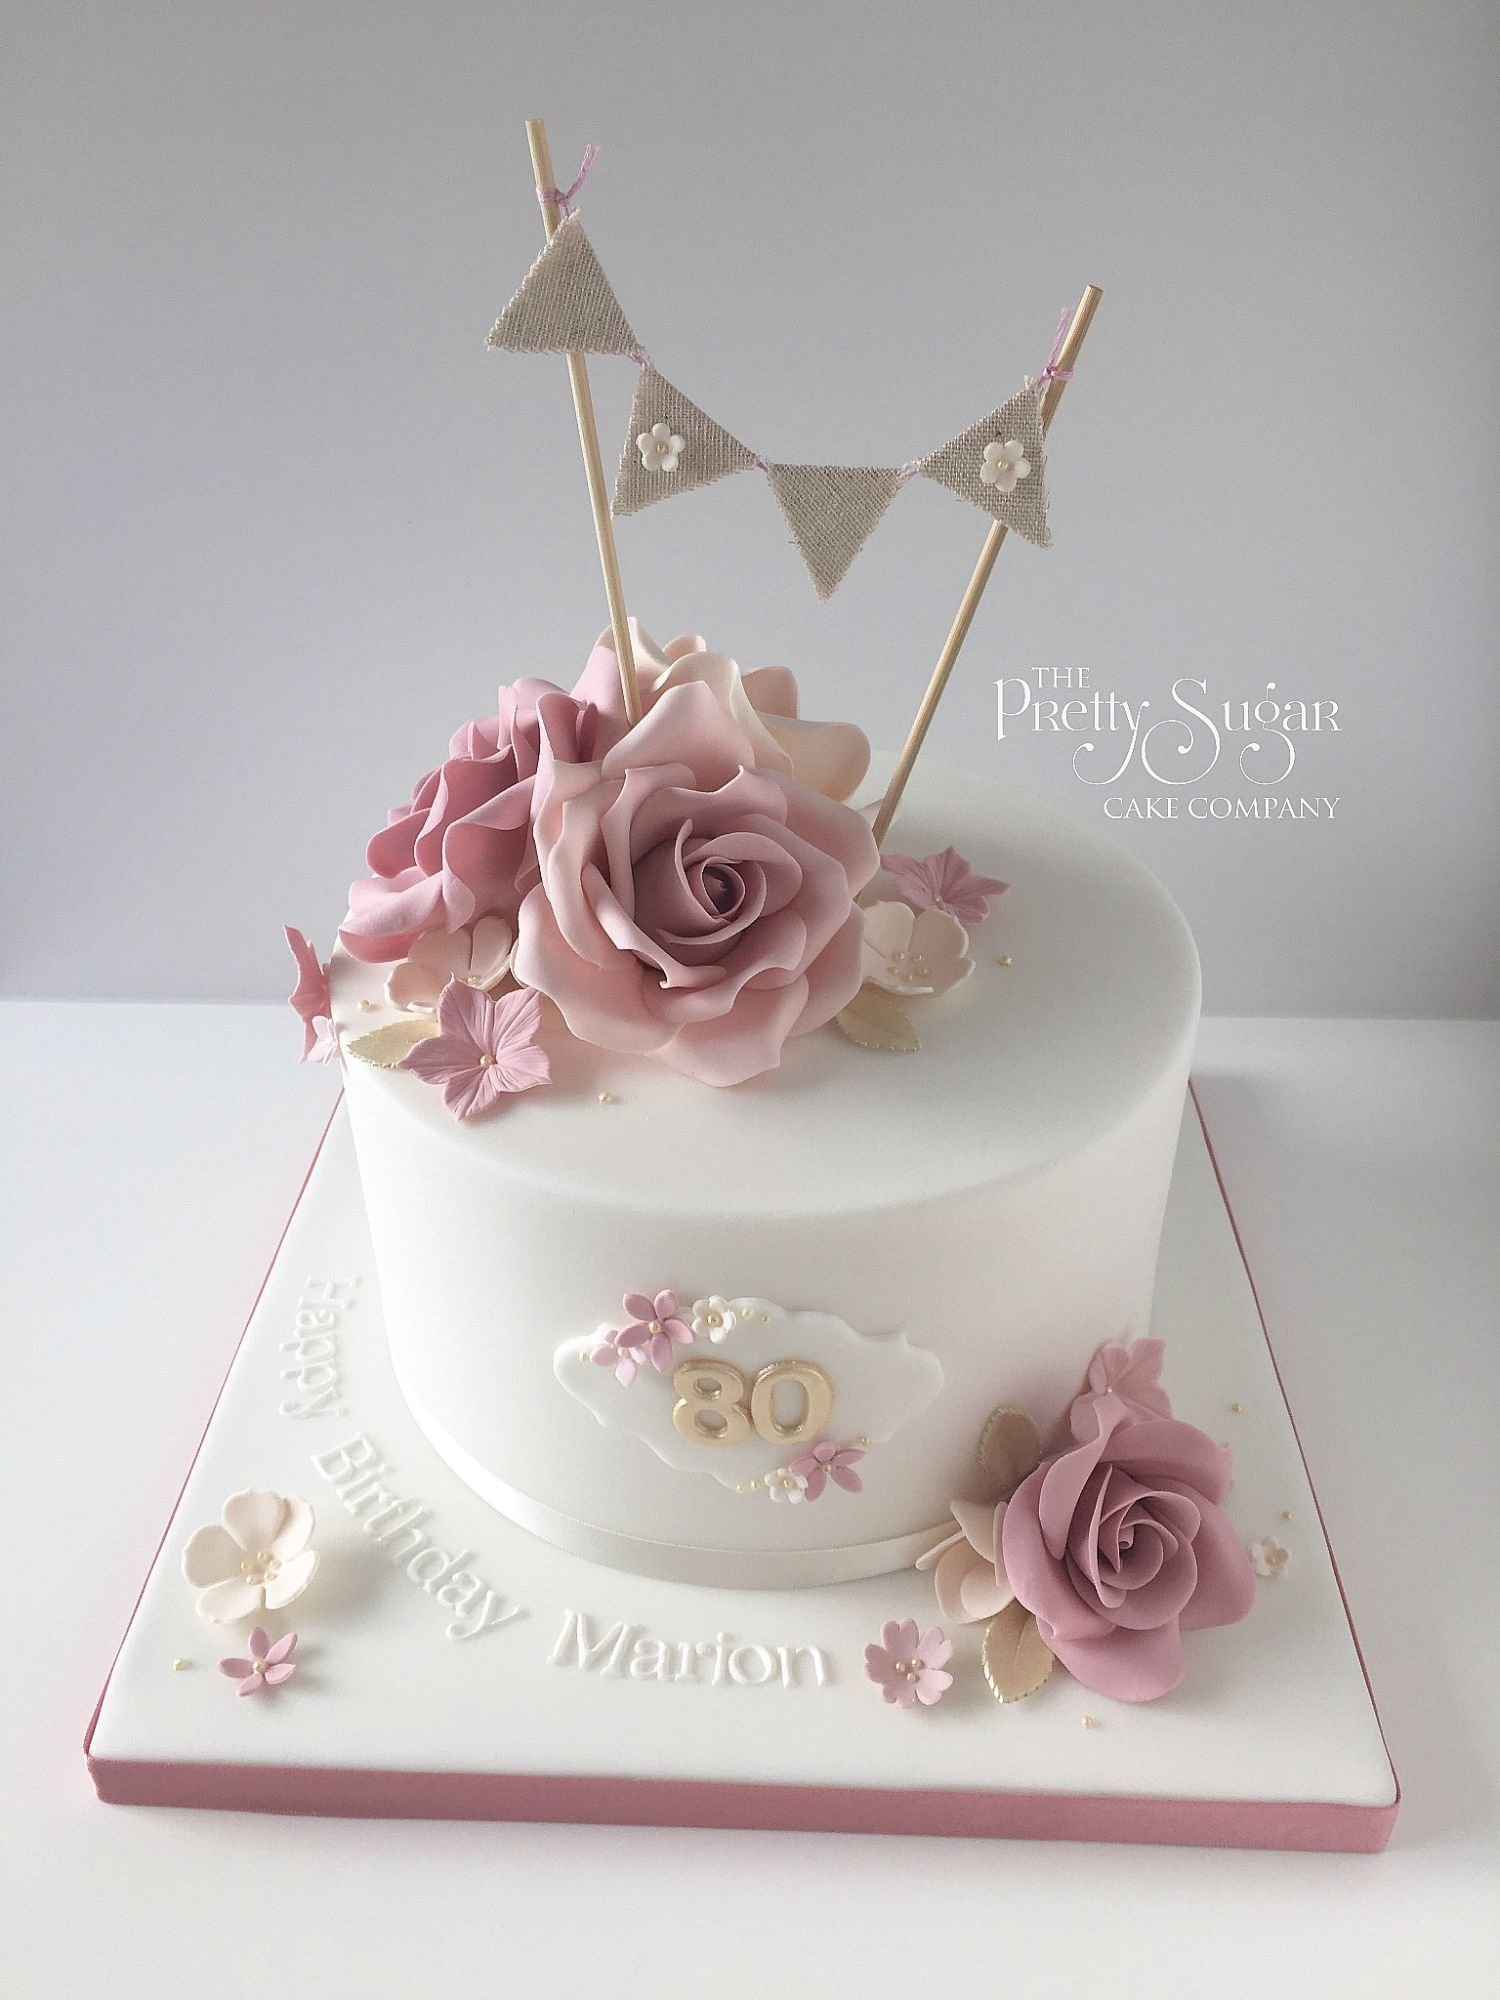 10 Awesome Birthday Cake Ideas For Women vintage style 80th birthday cake with sugar roses and bunting topper 2020